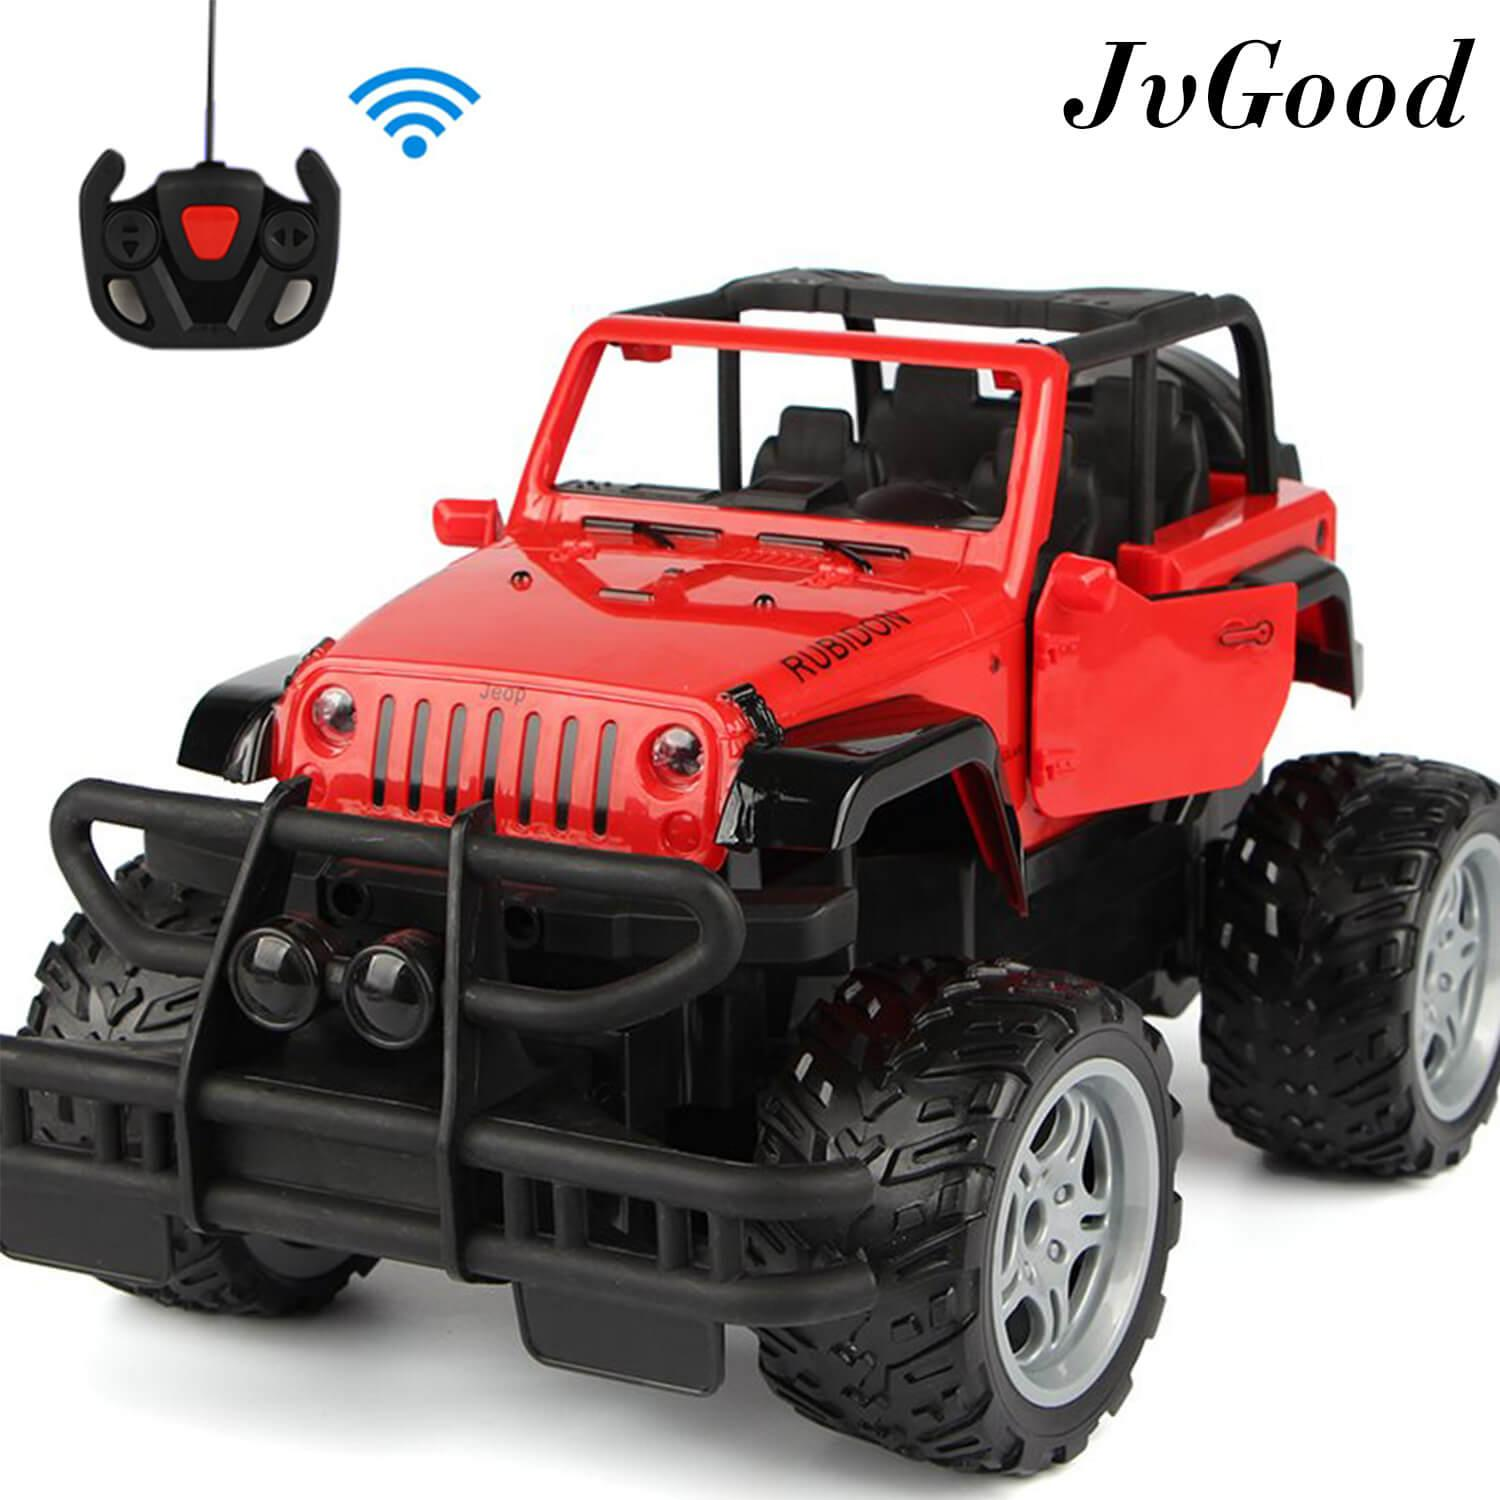 Rc Toys Vehicles For Sale Remote Control Cars Online Toy Car Jvgood Electric Rock Crawlers Radio Controlled Off Road